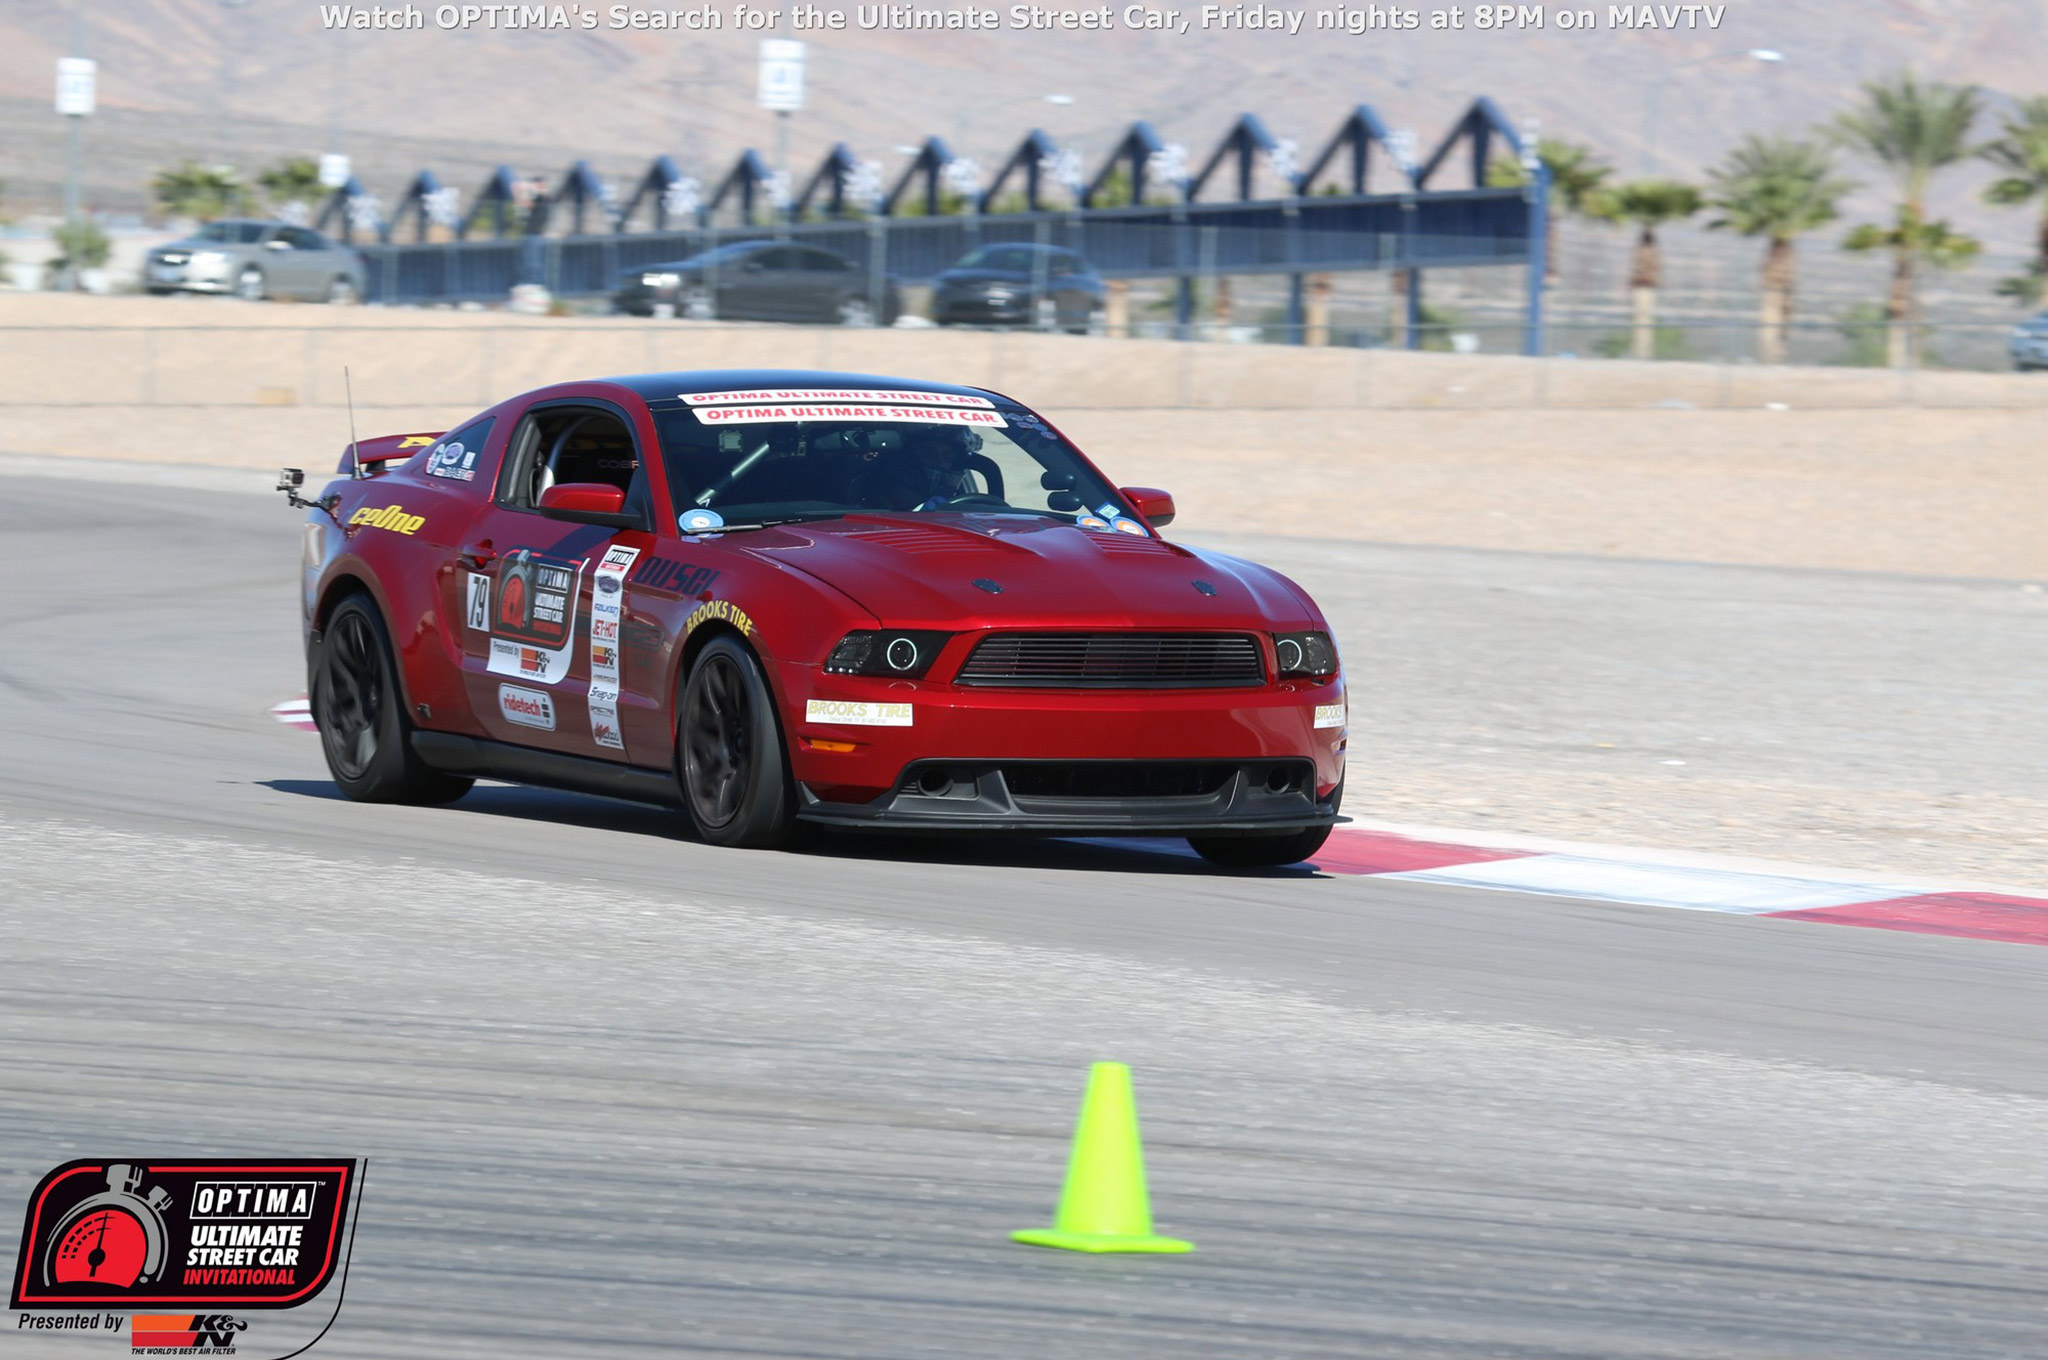 Cliff Elliott was one of several competitors, who made a return appearance to the OUSCI. With a wider stance and more seat time, Elliott shaved more than 3.5 seconds off his time in the Falken Tire Road Course Time Trial, improving eight positions over his 2014 finish.